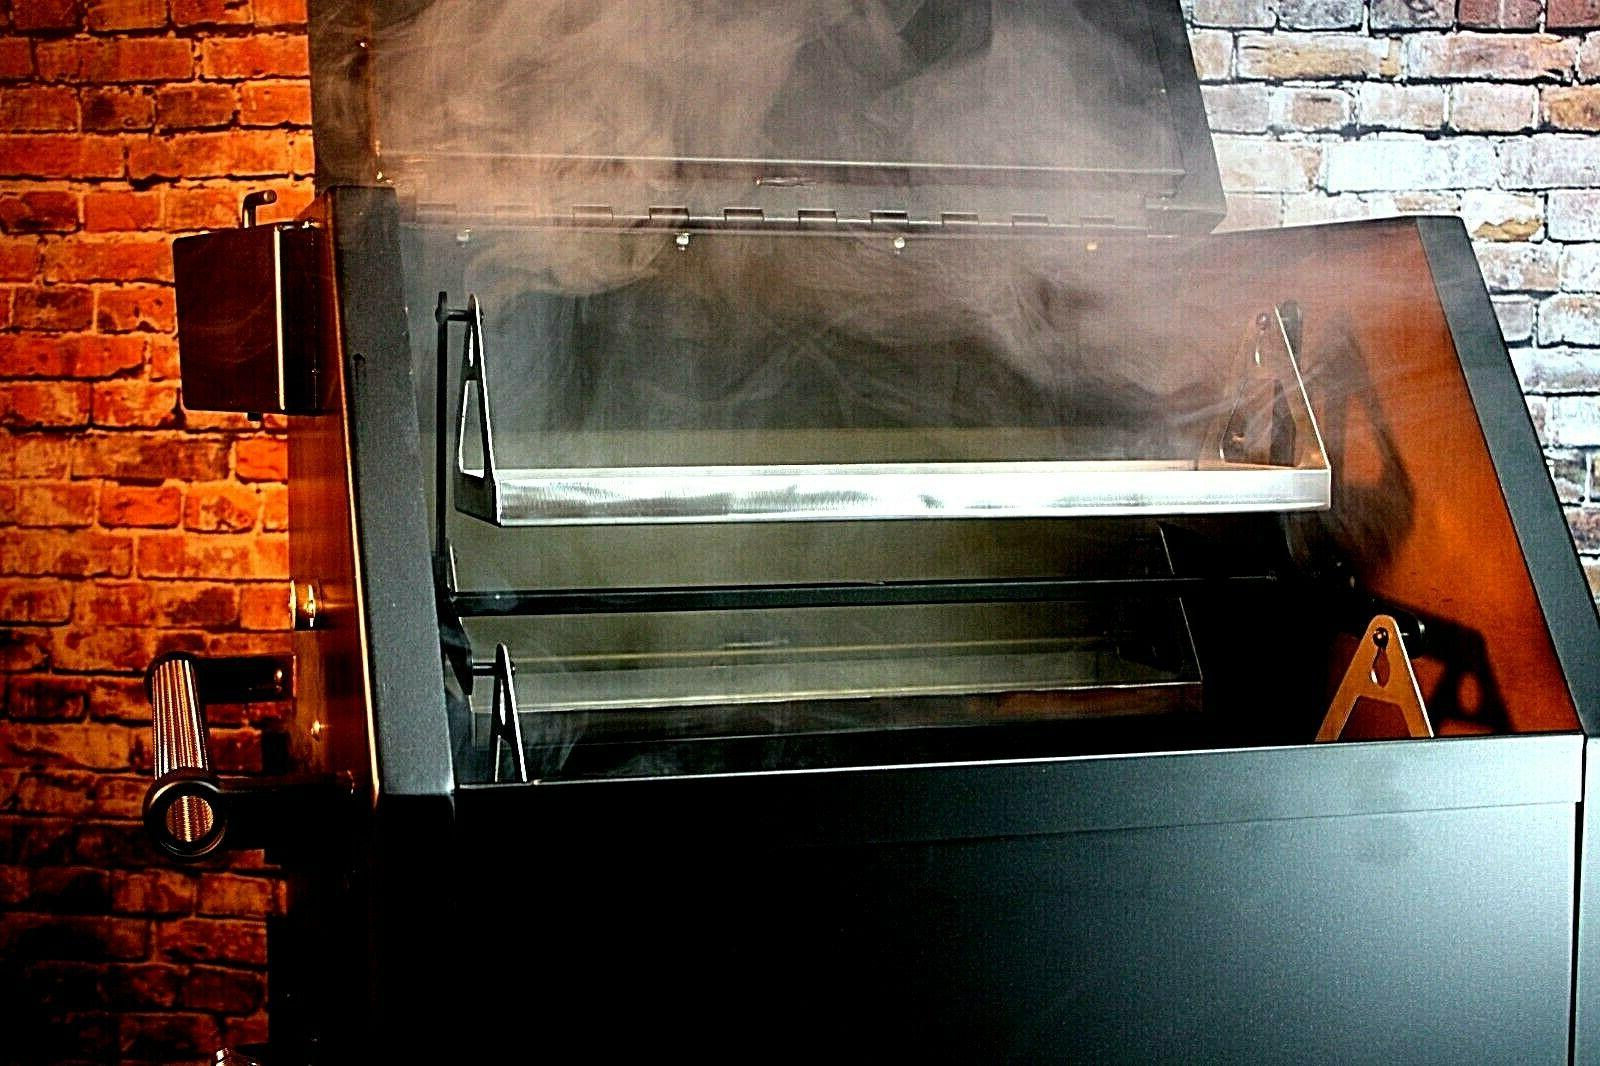 BBQ Smoker Smoker Grill ONE!!! Made in